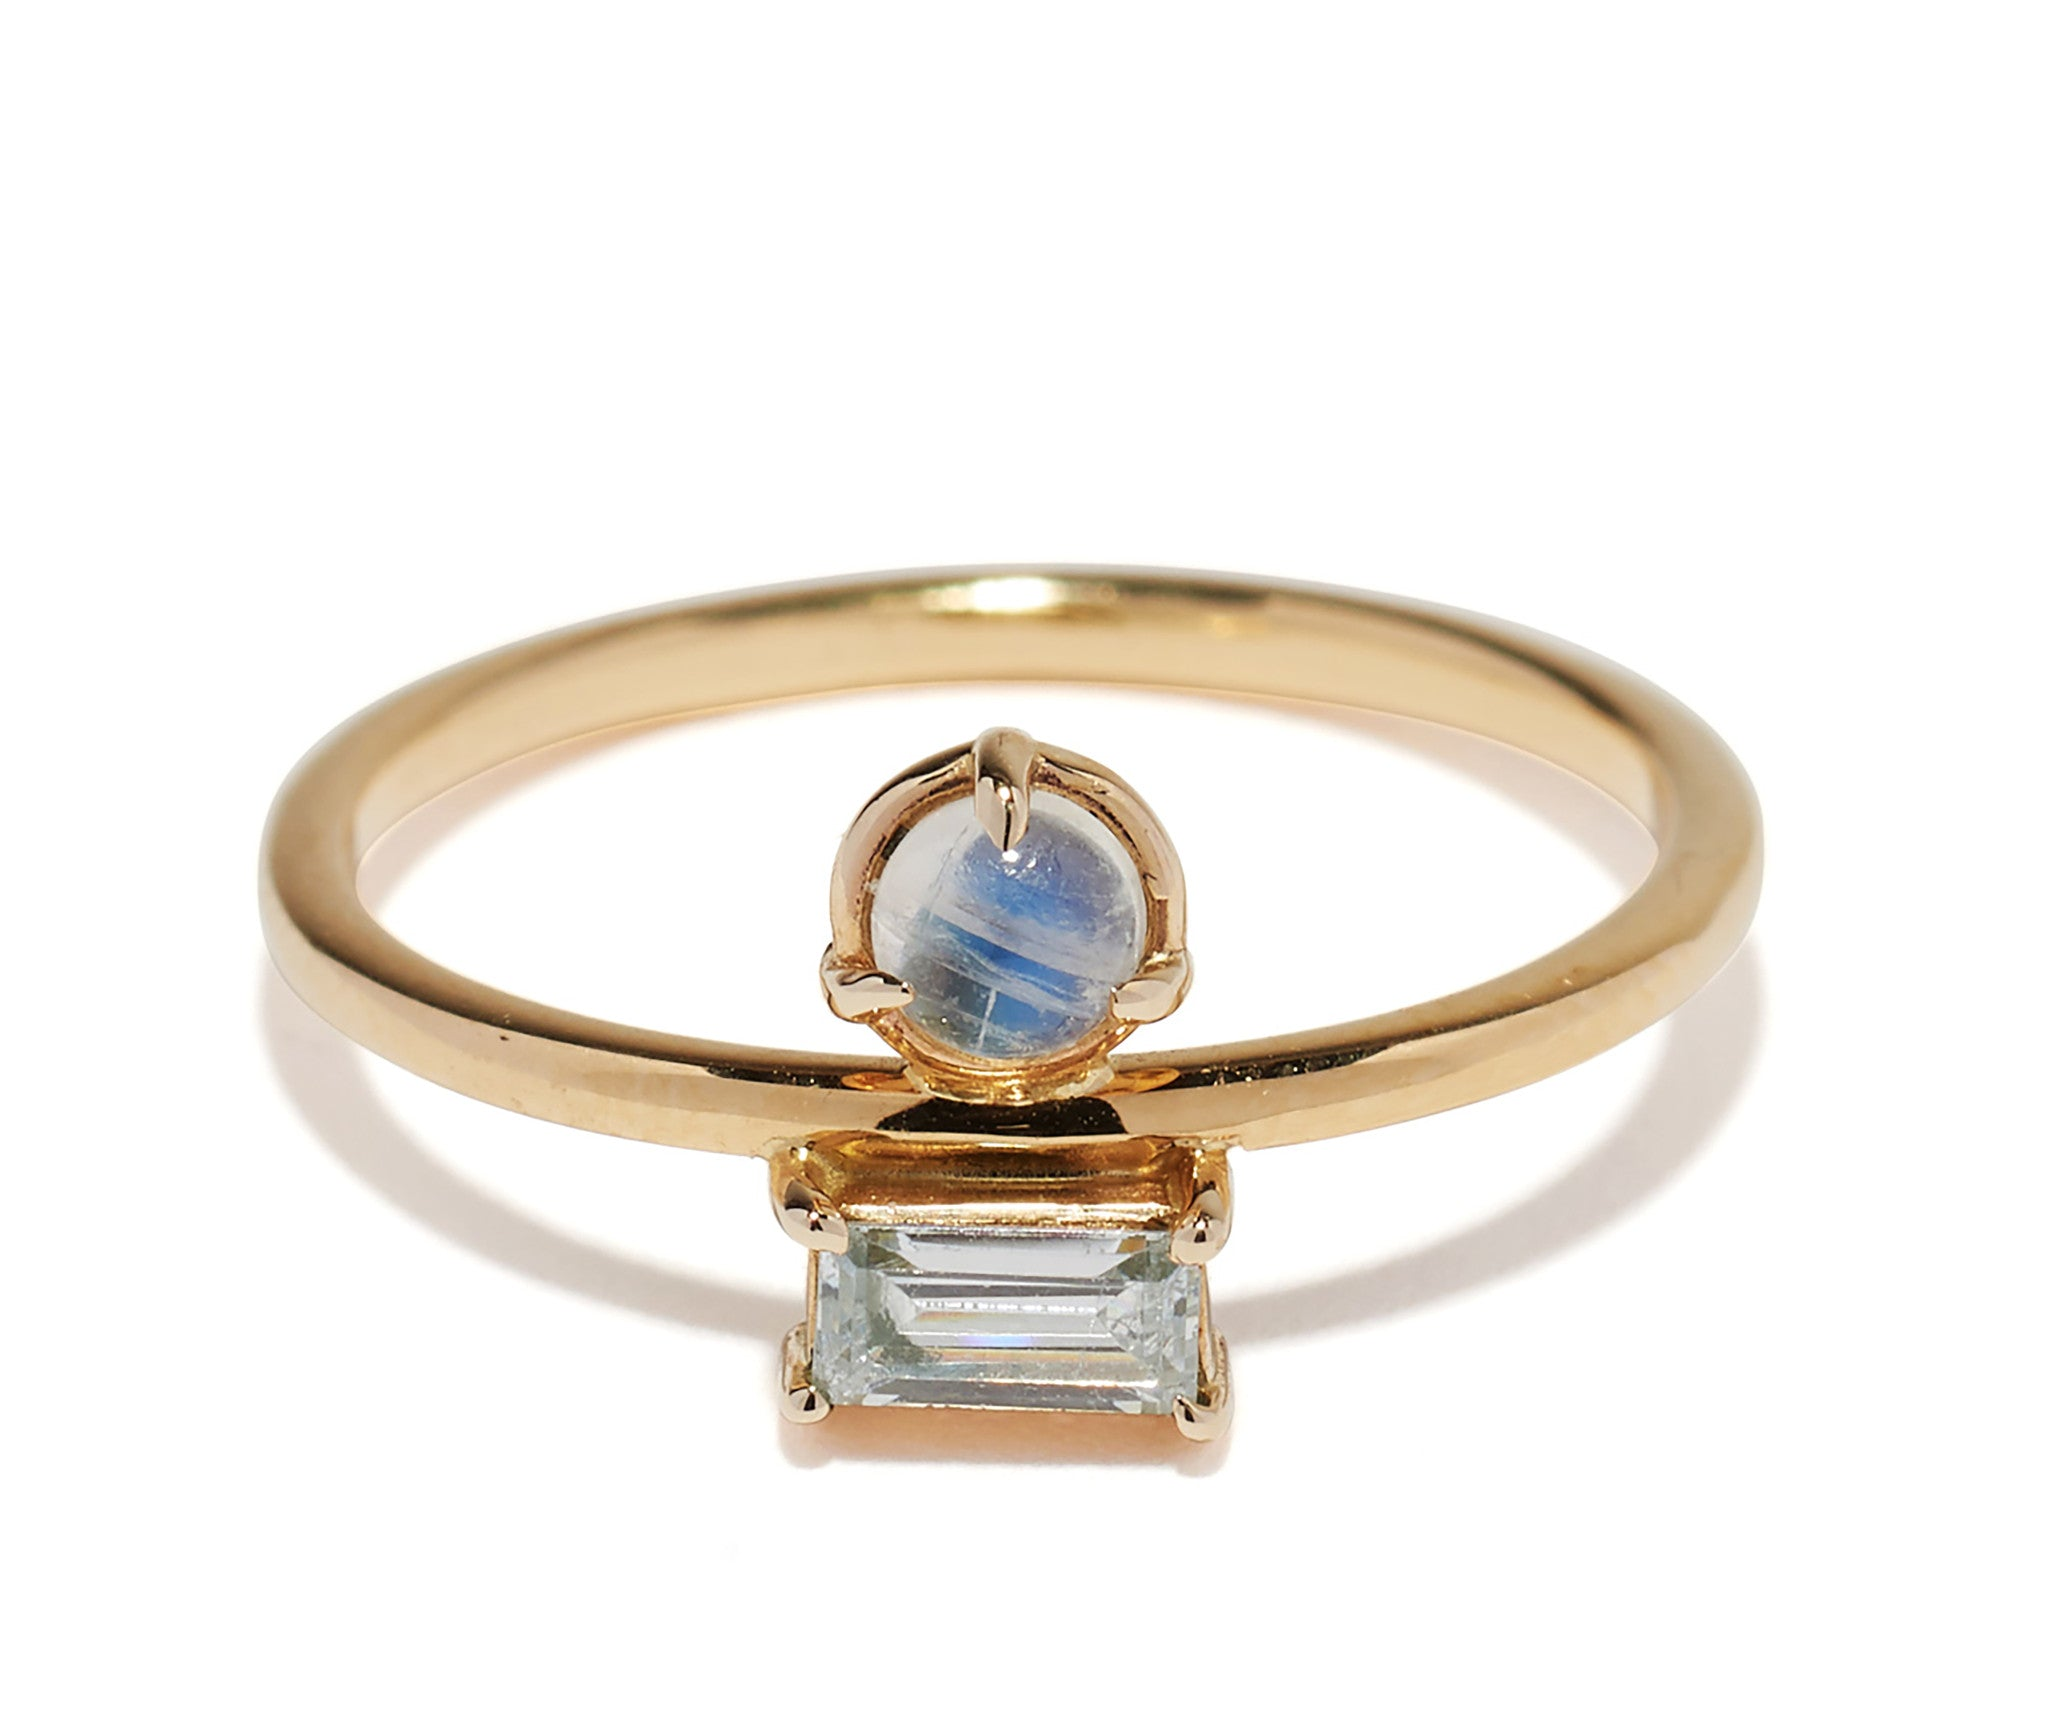 Light Blue Sapphire & Moonstone Bezel Ring Wendy Nichol Fine Jewelry Designer 14k Gold handmade in NYC